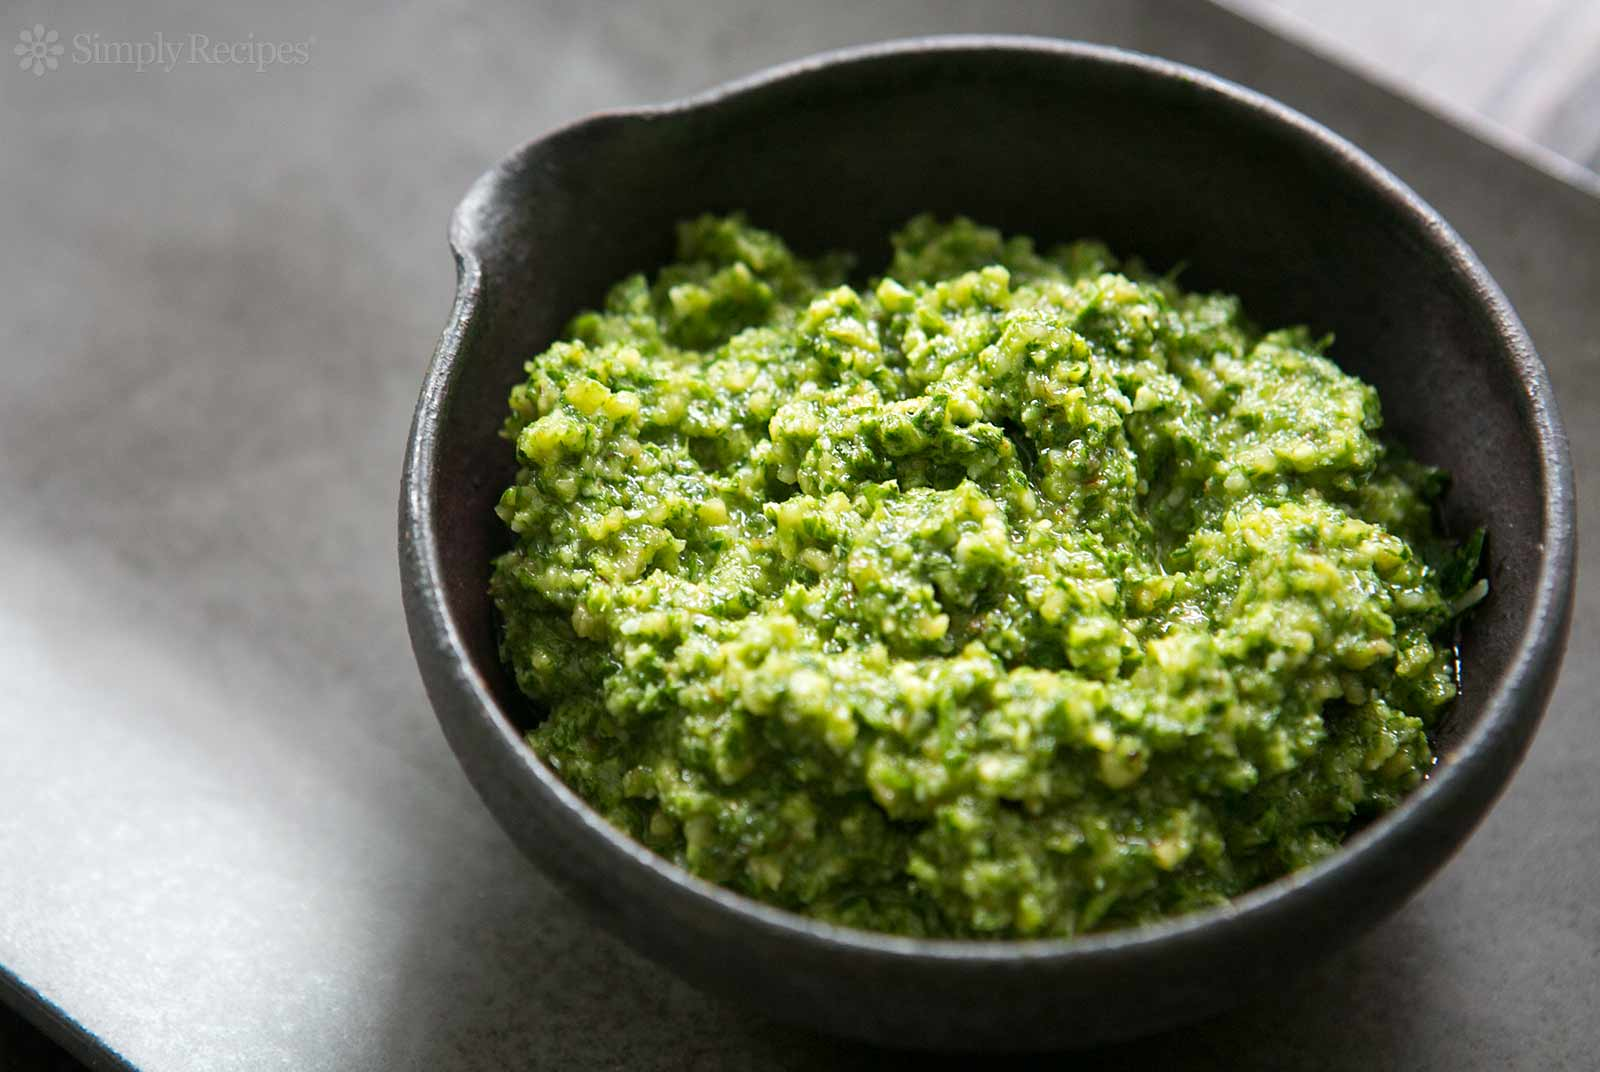 """Easy and Durable Basil-Walnut Pesto   Place one cup of walnuts, 1 minced garlic clove and 1/2 teaspoon of sea salt in your food processor and grind till nuts are grainy. Add three cups of fresh basil leaves (till it fills your container), drizzle 1/4 to 1/2 cup of finest quality olive oil over the top, then grind till you have a serviceable, coarse paste. (I often make extra to store in zip-lock plastic bags that I flatten into """"bricks"""" and stack in my freezer. Keeps for months without losing flavor.)"""